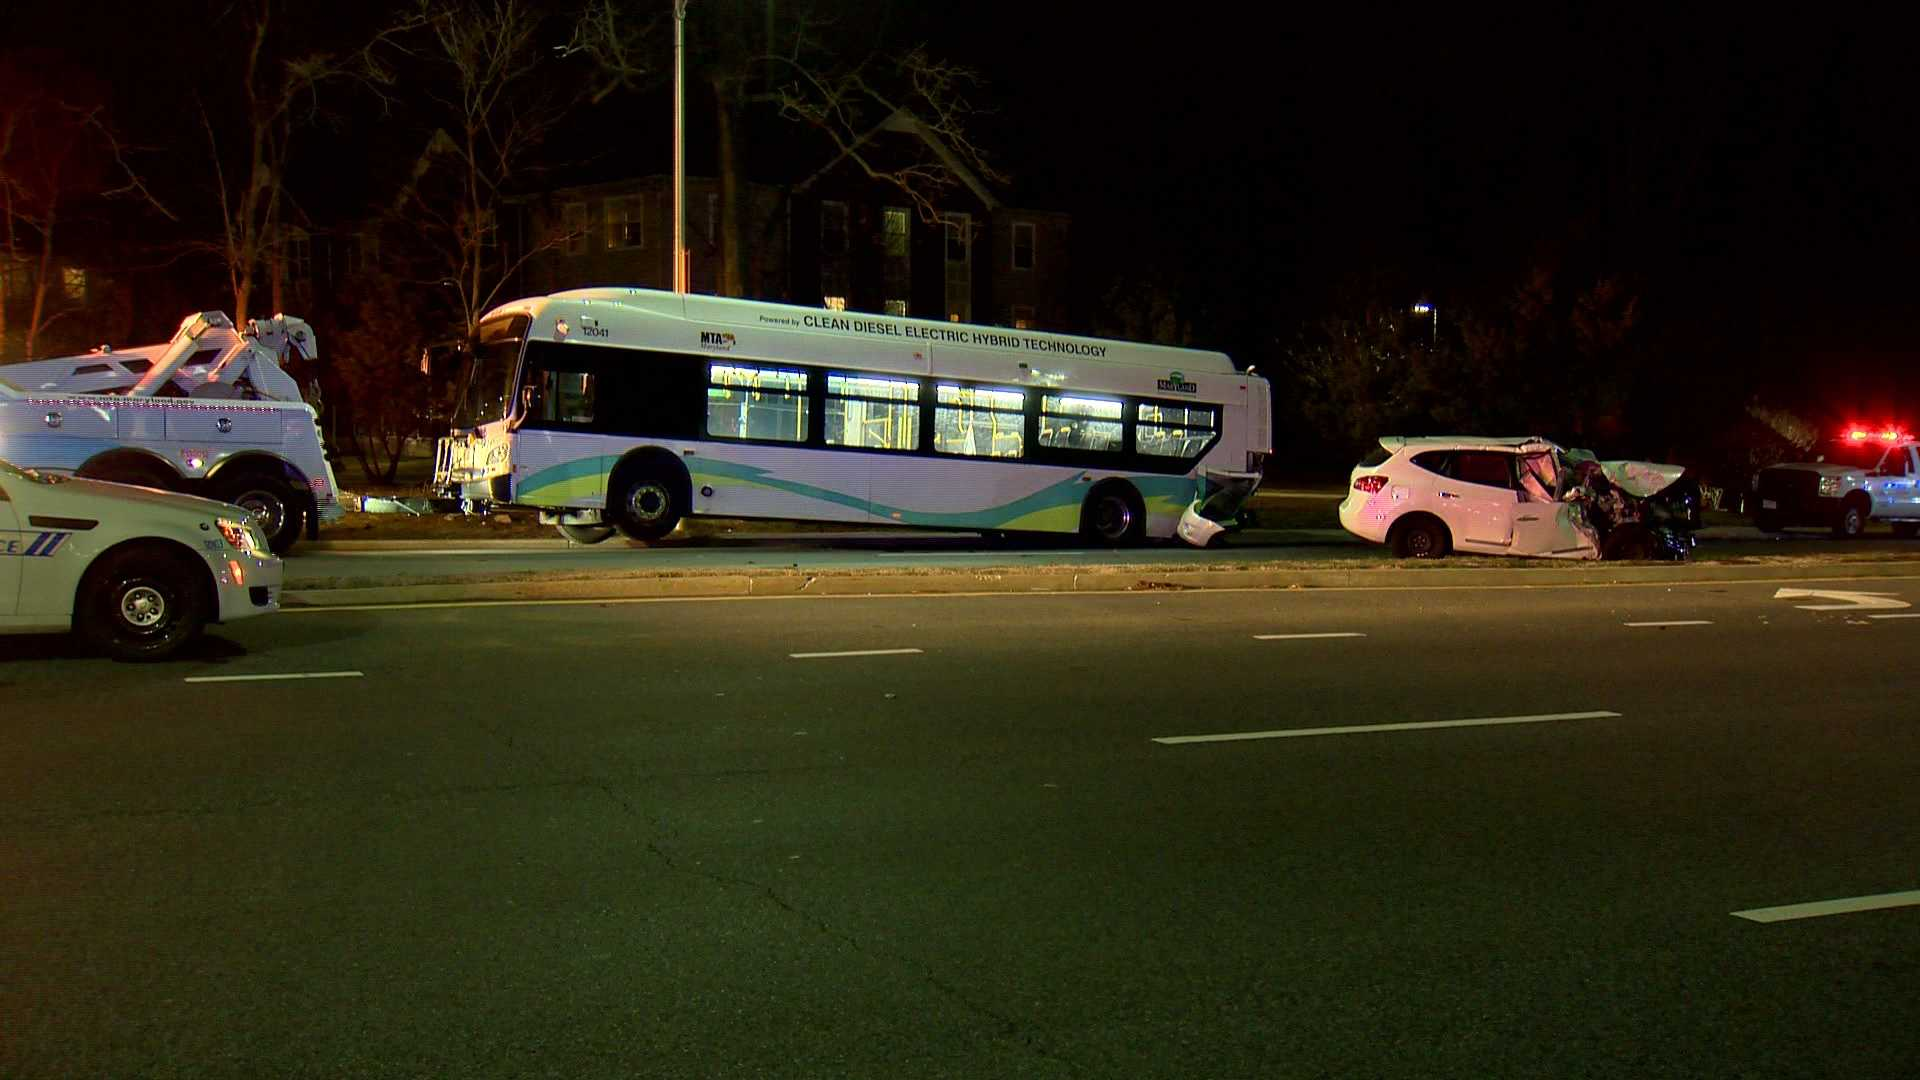 A child died when a sport utility vehicle collided with a Maryland Transit Administration bus Monday evening, according to Baltimore police.